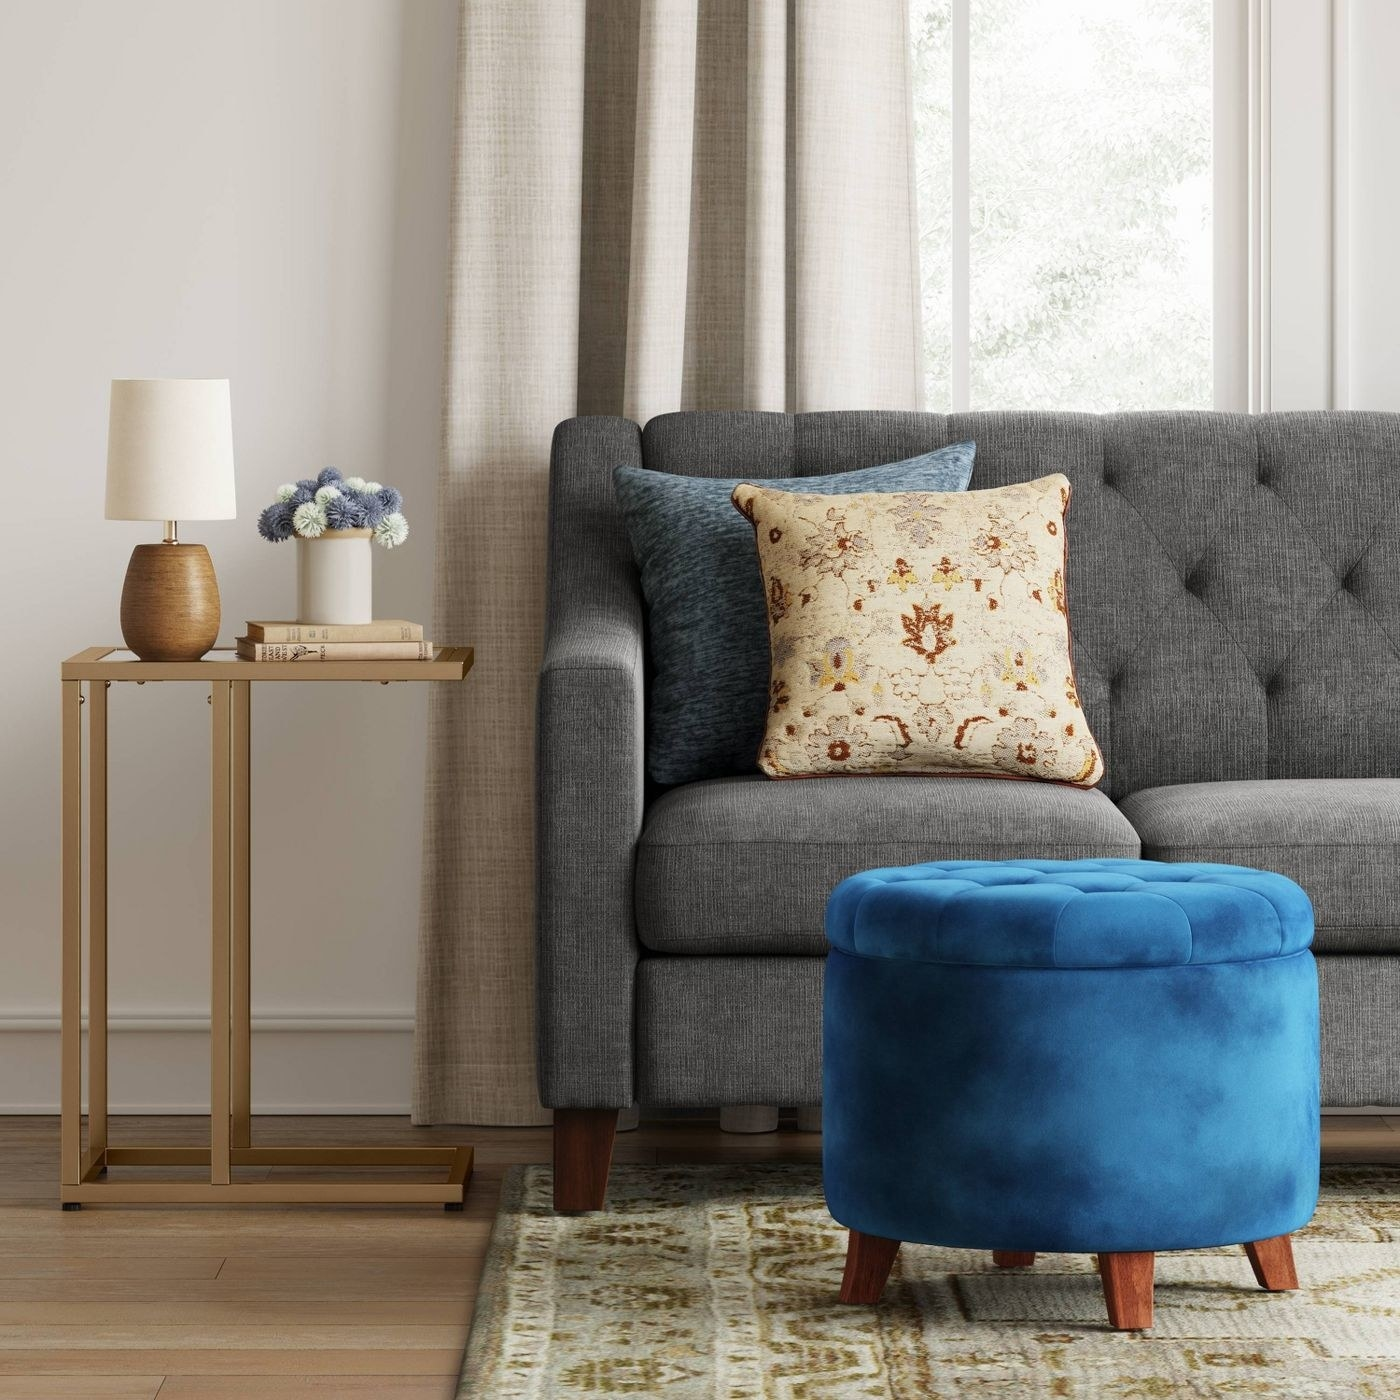 The round ottoman with a flat top and small wooden legs in blue velvet